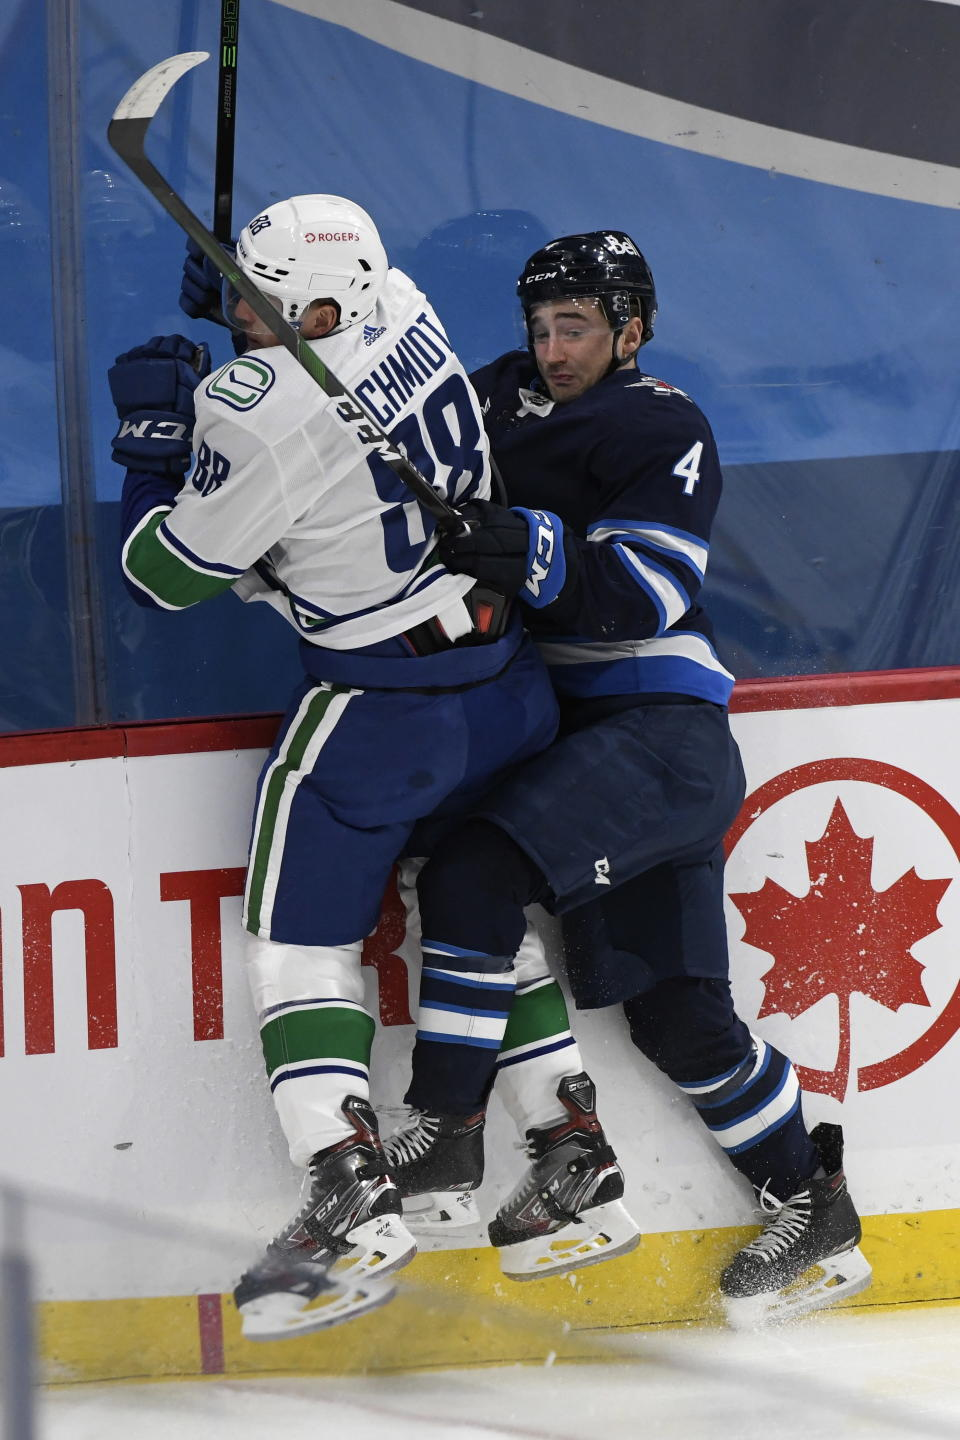 Winnipeg Jets' Neal Pionk (4) checks Vancouver Canucks' Nate Schmindt (88) during first period NHL hockey action in Winnipeg, Manitoba on Tuesday March 1, 2021. (Fred Greenslade/The Canadian Press via AP)